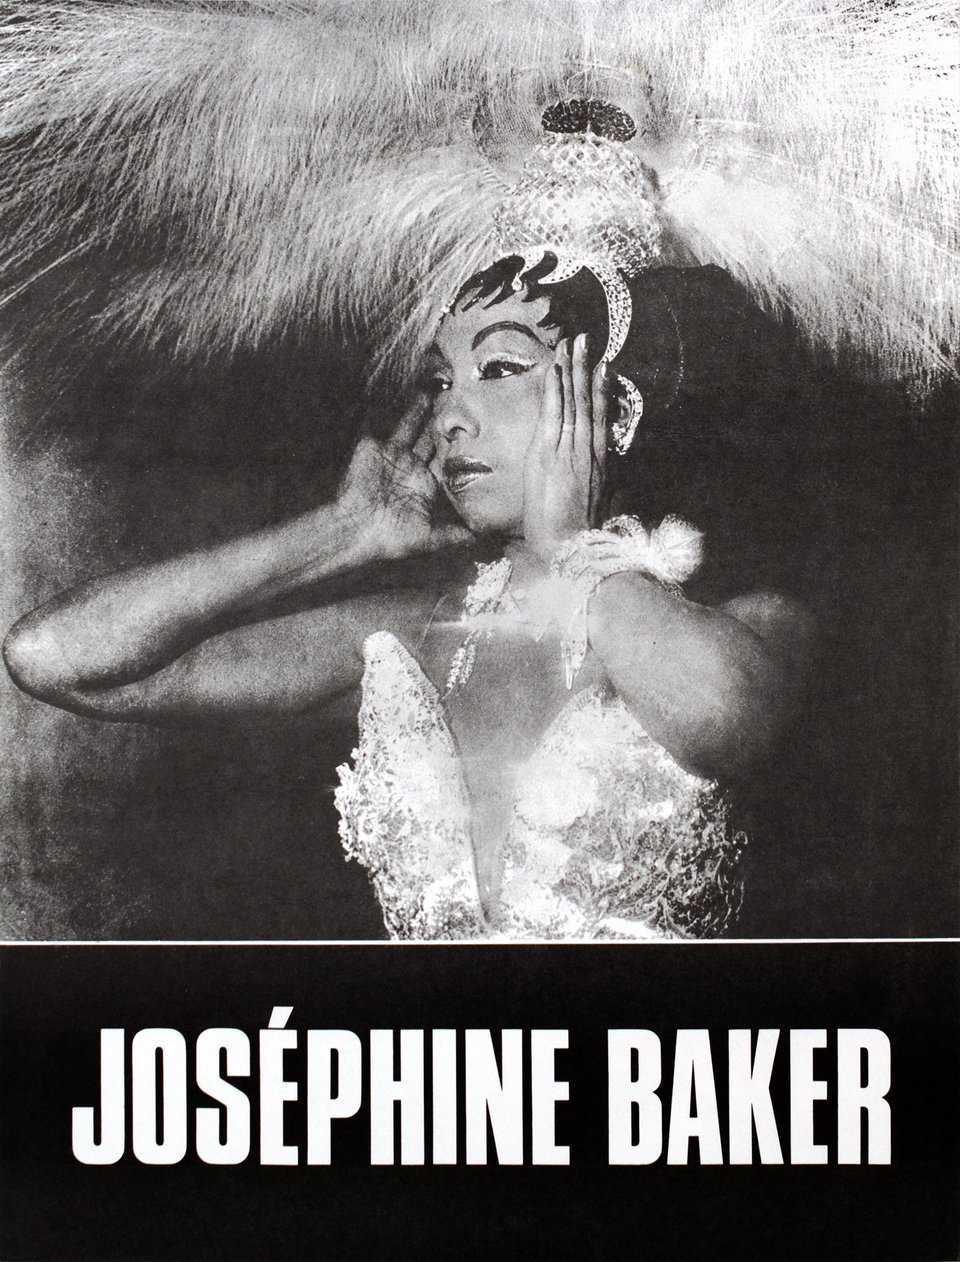 Joséphine Baker – Affiche ancienne – ANONYME – 1950